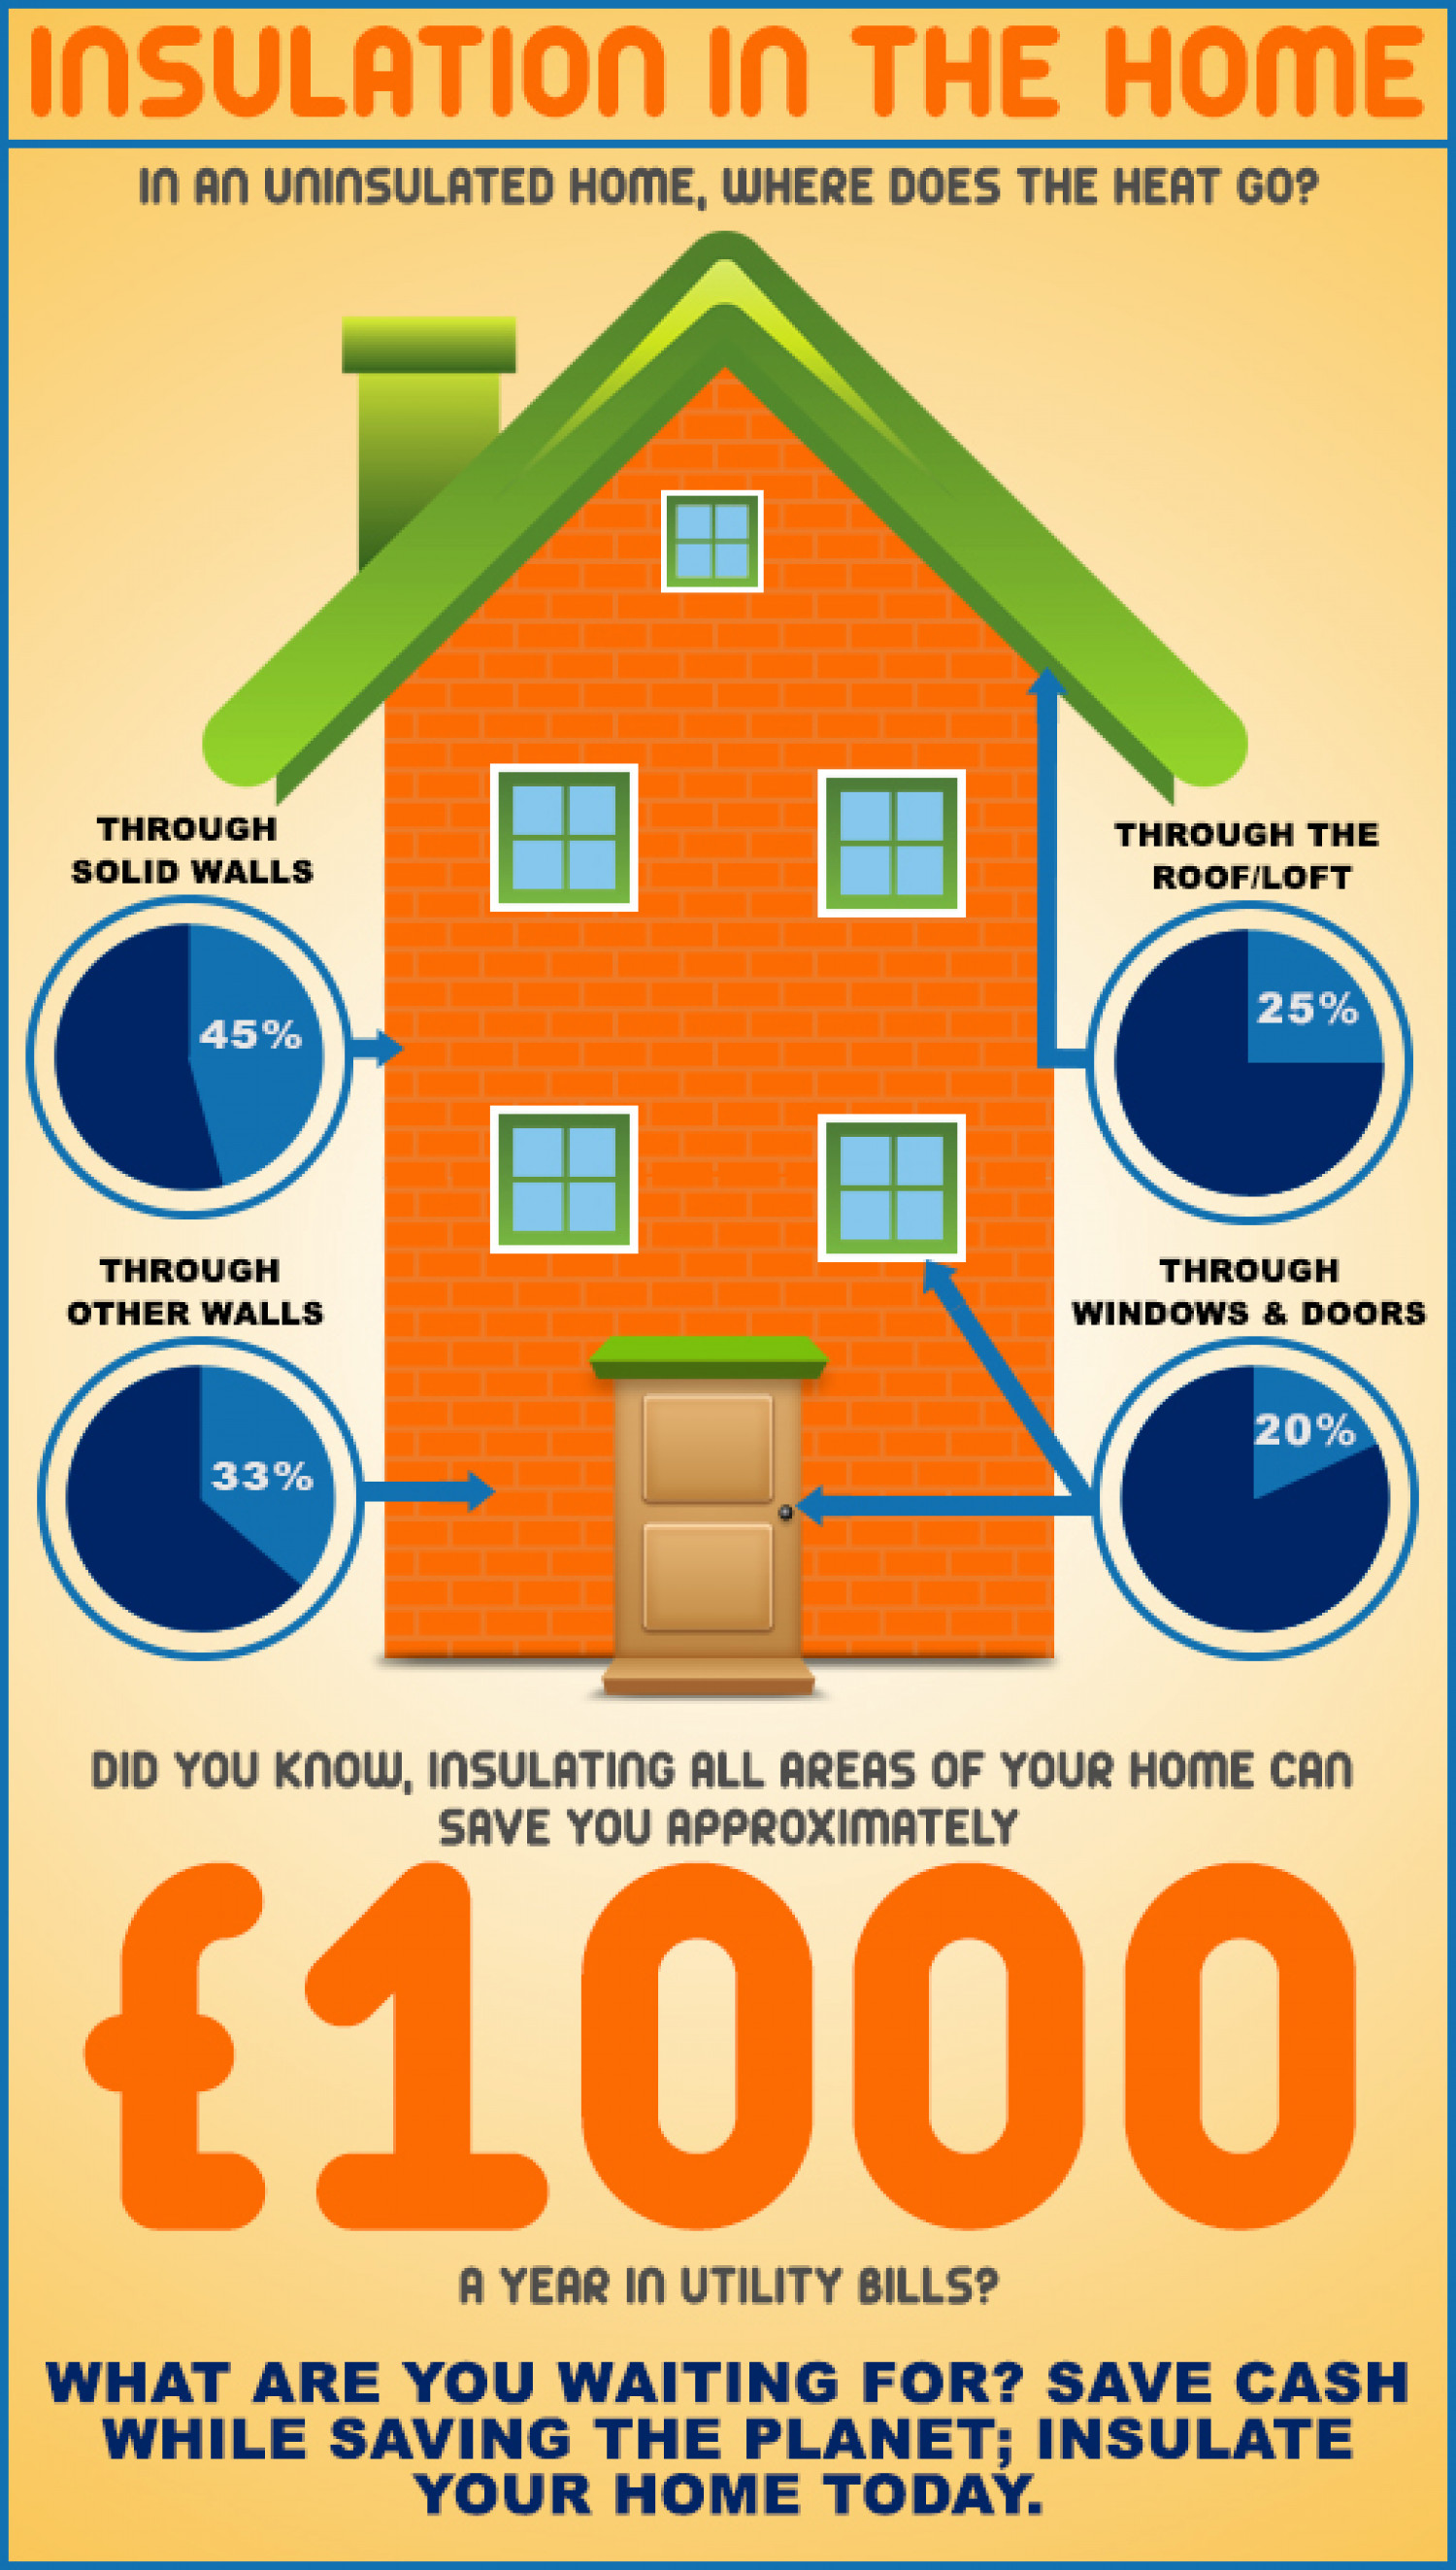 Where does the heat leave the home? Infographic